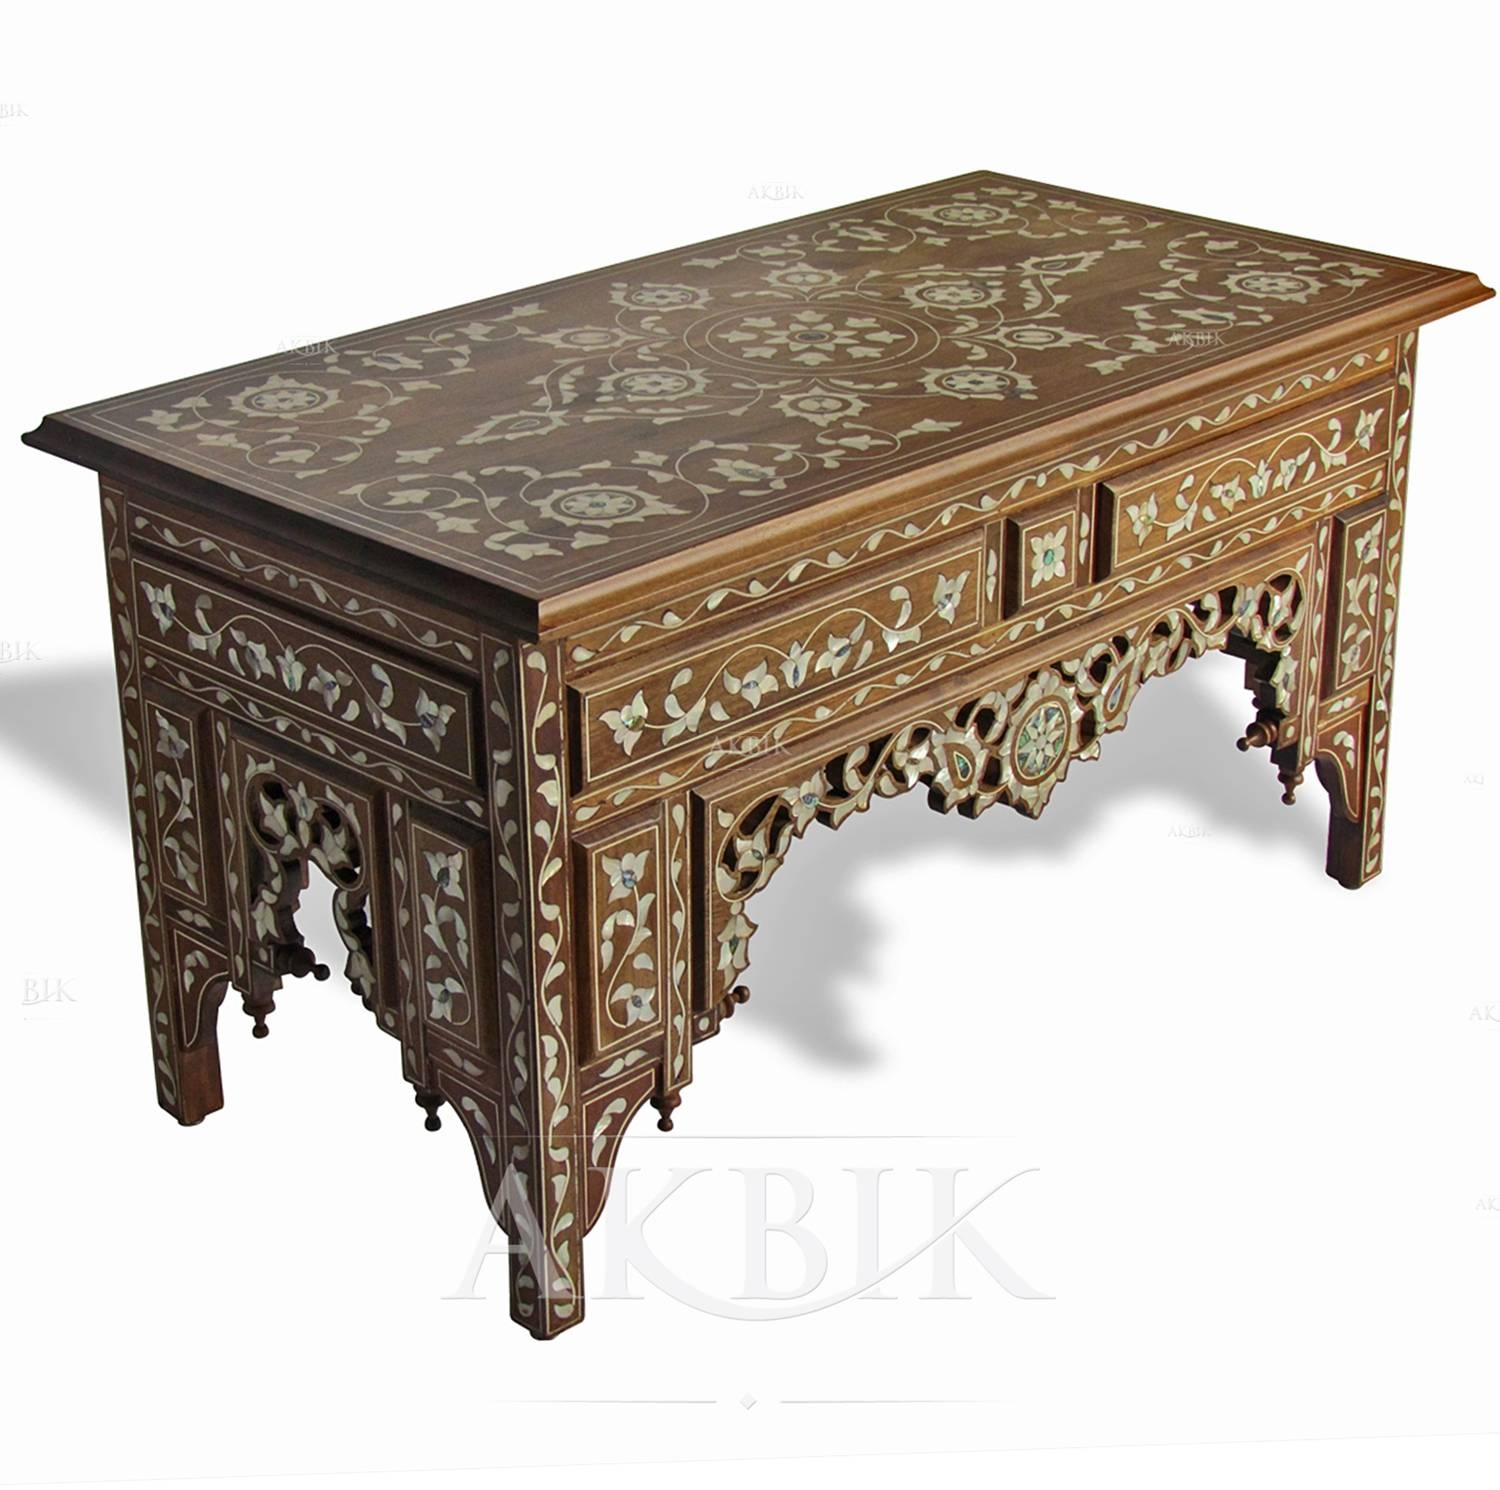 Moroccan Coffee Table | Idi Design with regard to Mother Of Pearl Coffee Tables (Image 25 of 30)